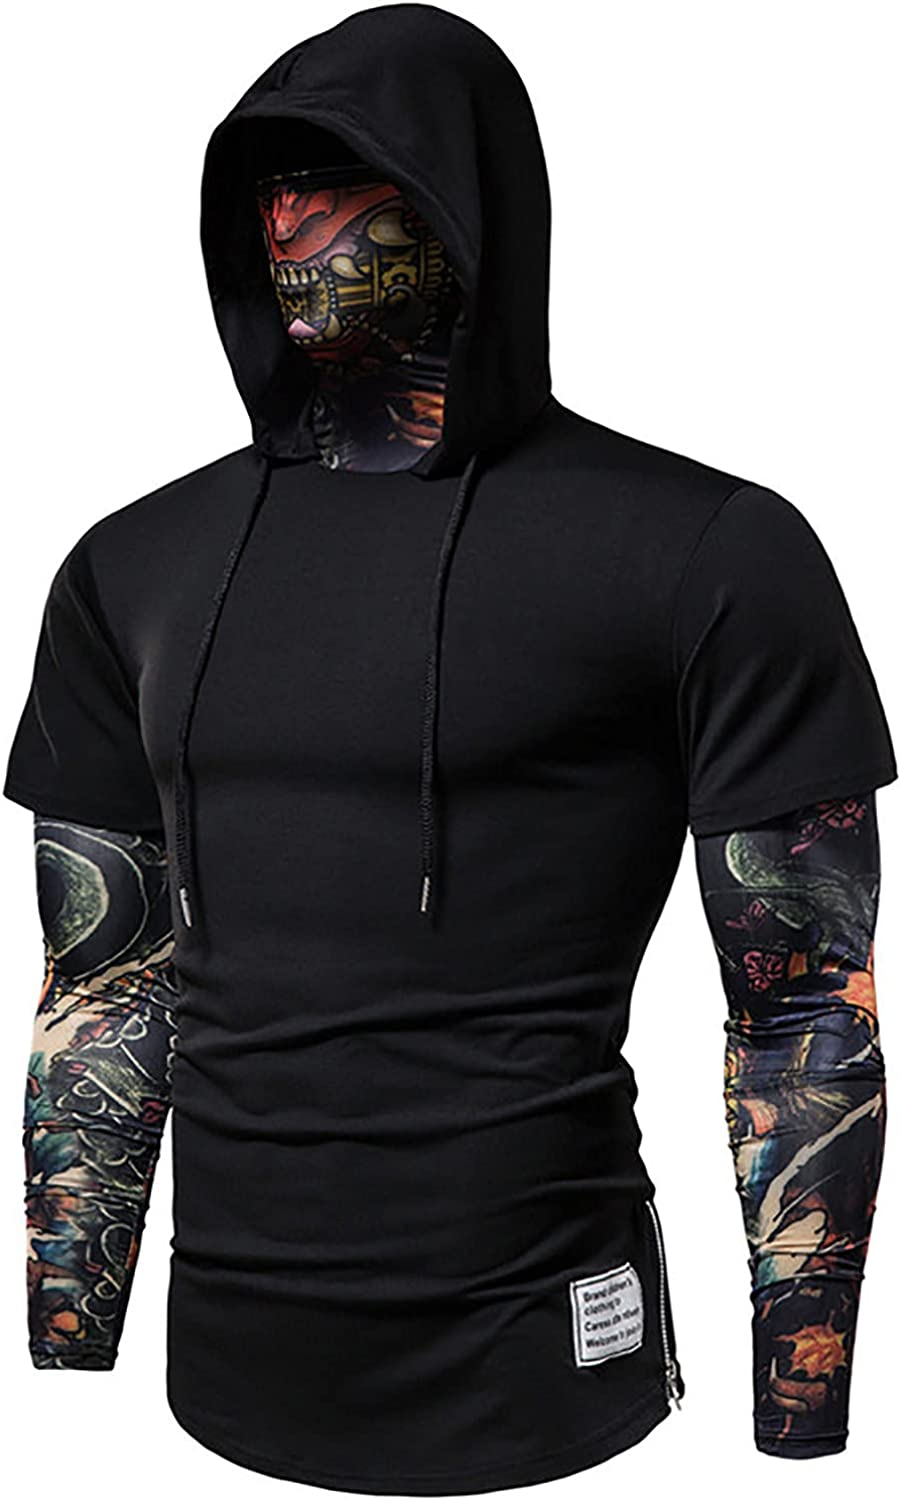 Mens Hoodie Sweatshirt Cosplay Fake Two Pieces Hooded Pullover Sports Riding Casual Novelty Tops Blouse